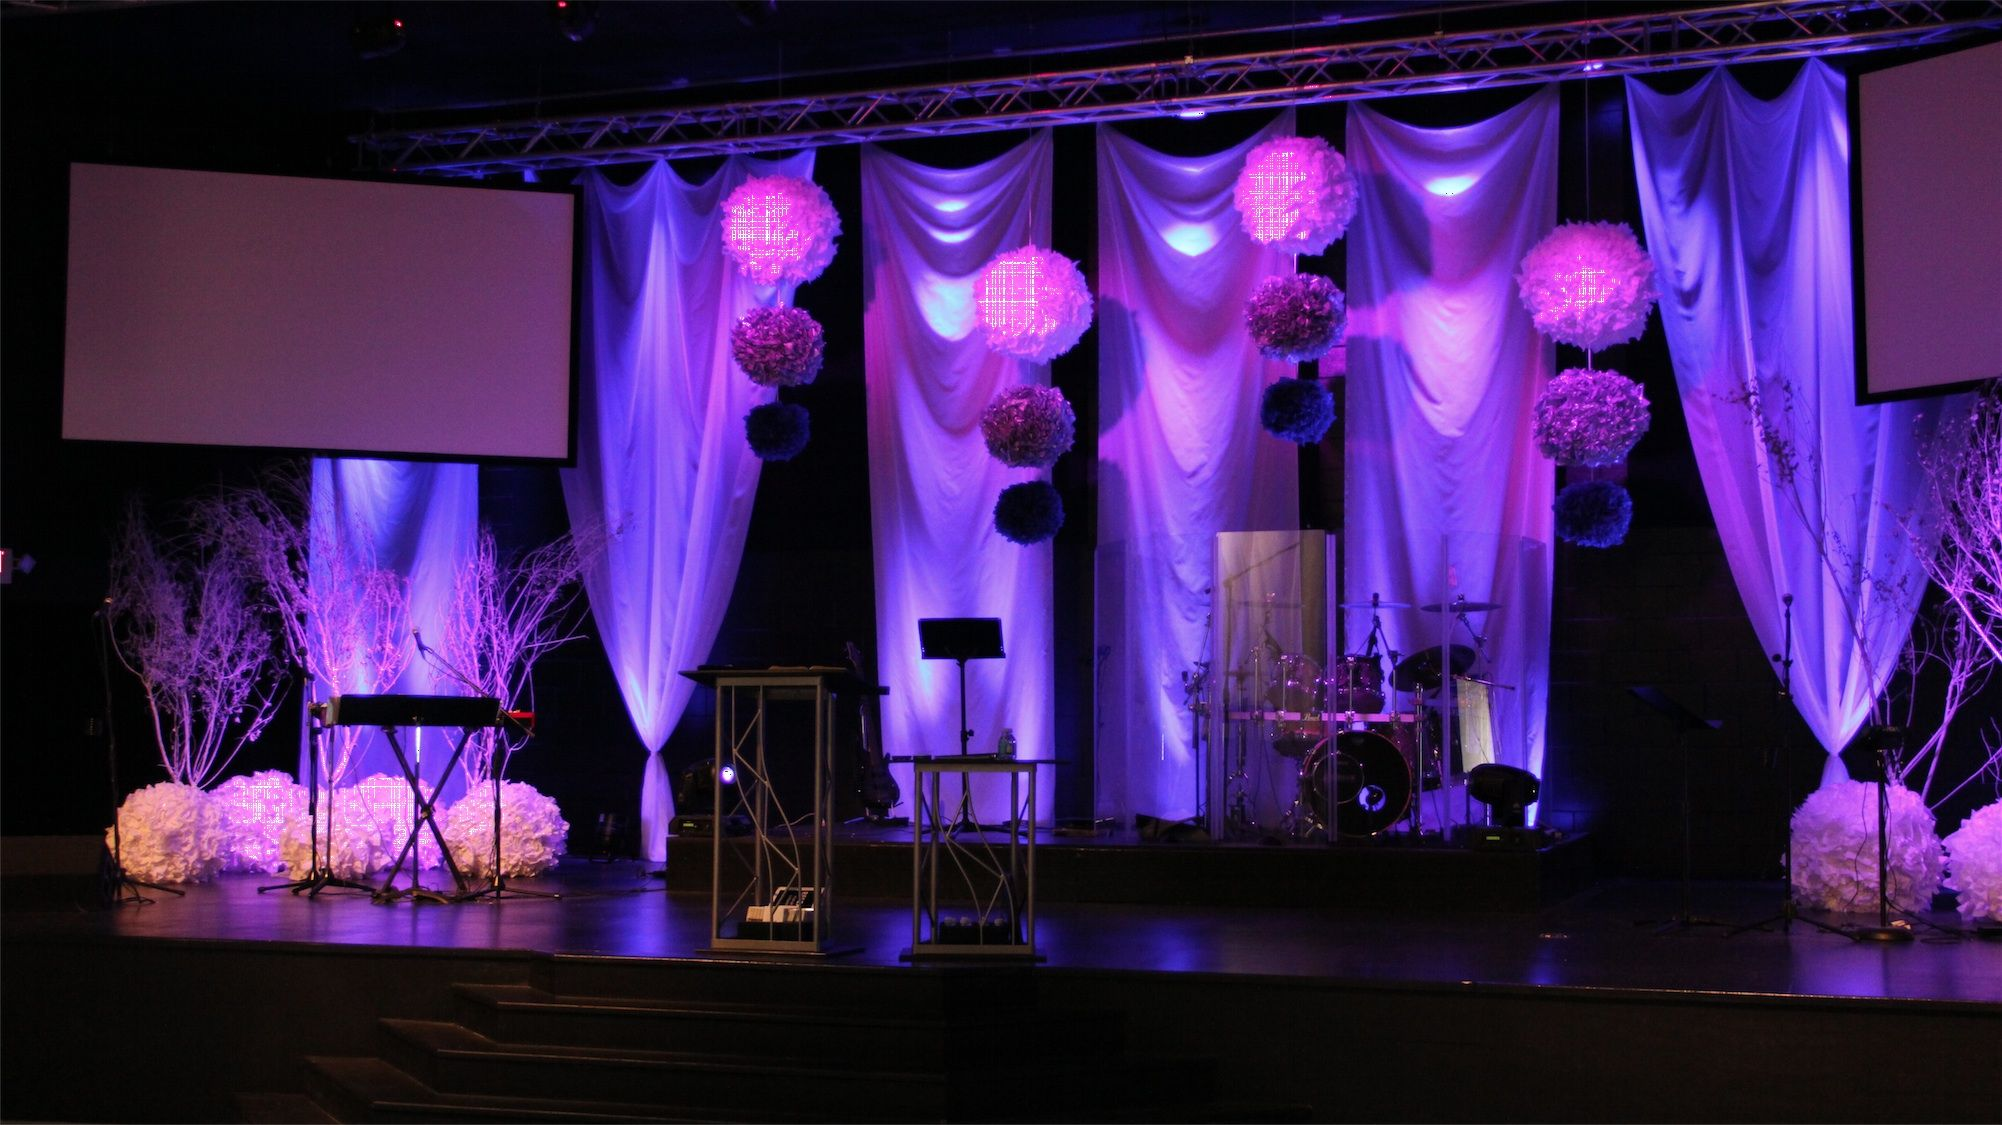 joey riggins from lighthouse church in panama city beach fl brings us this stage design